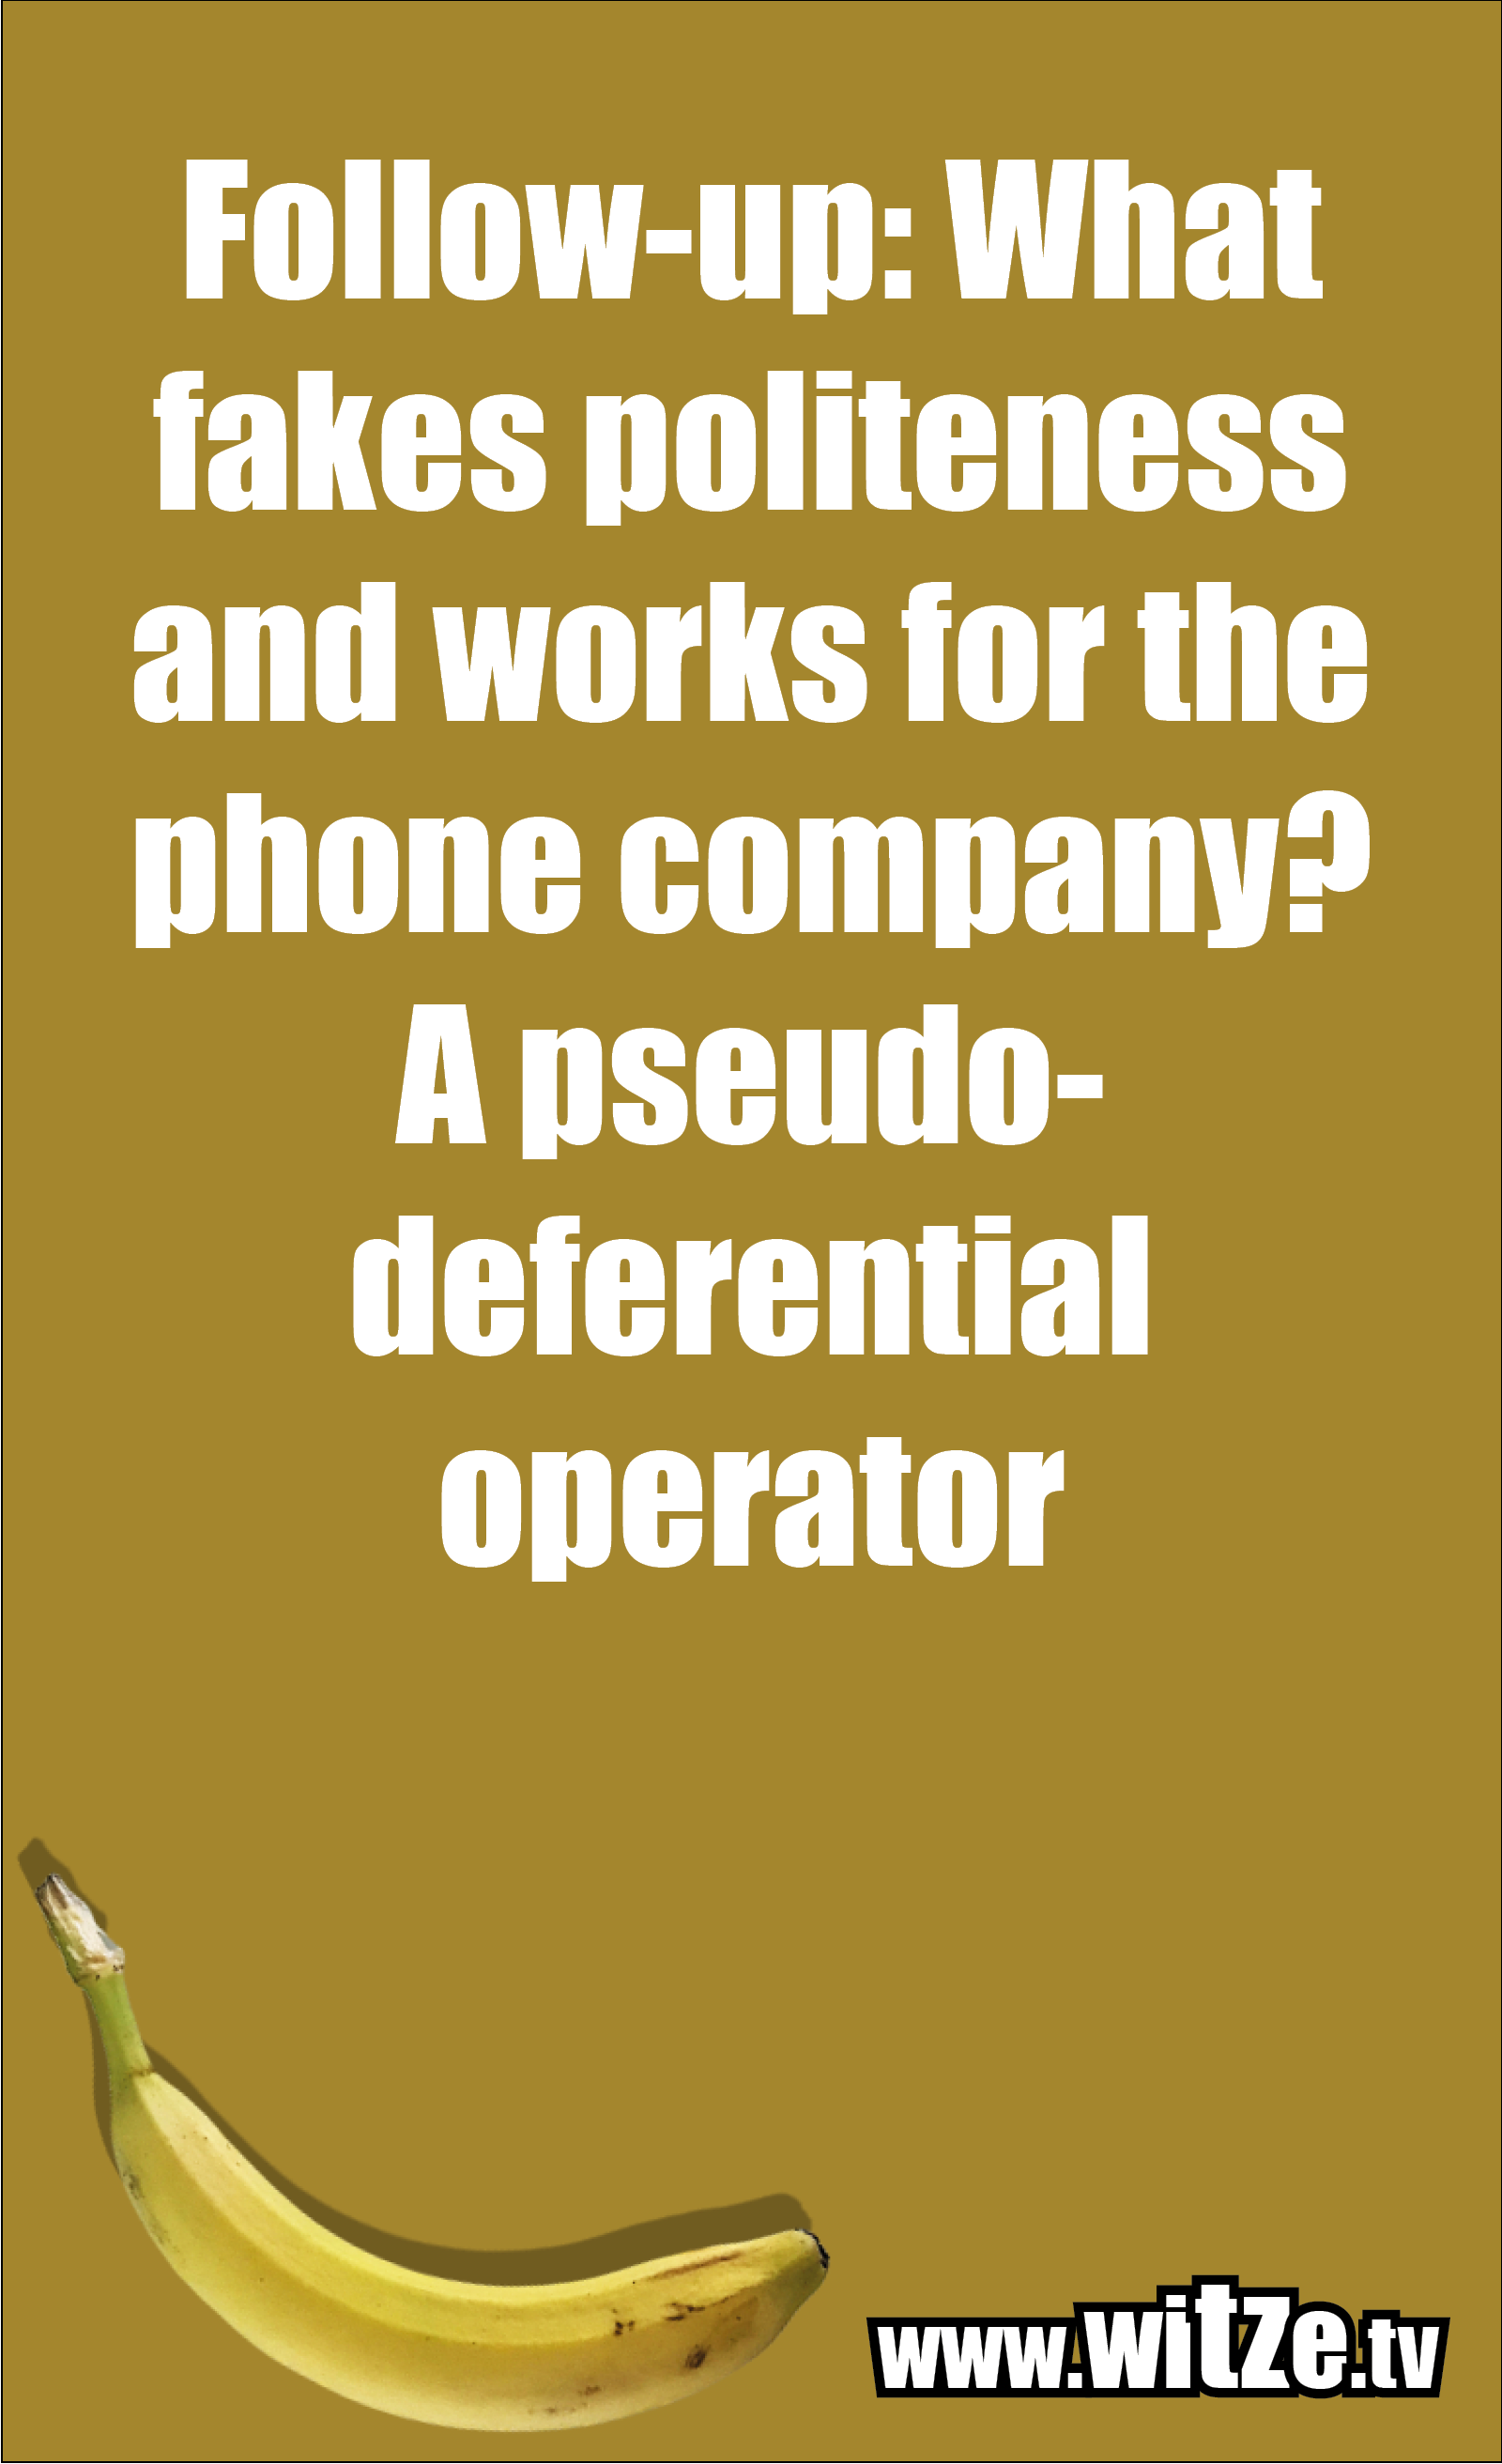 Math joke… Follow-up: What fakes politeness and works for the phone company? A pseudo-deferential operator